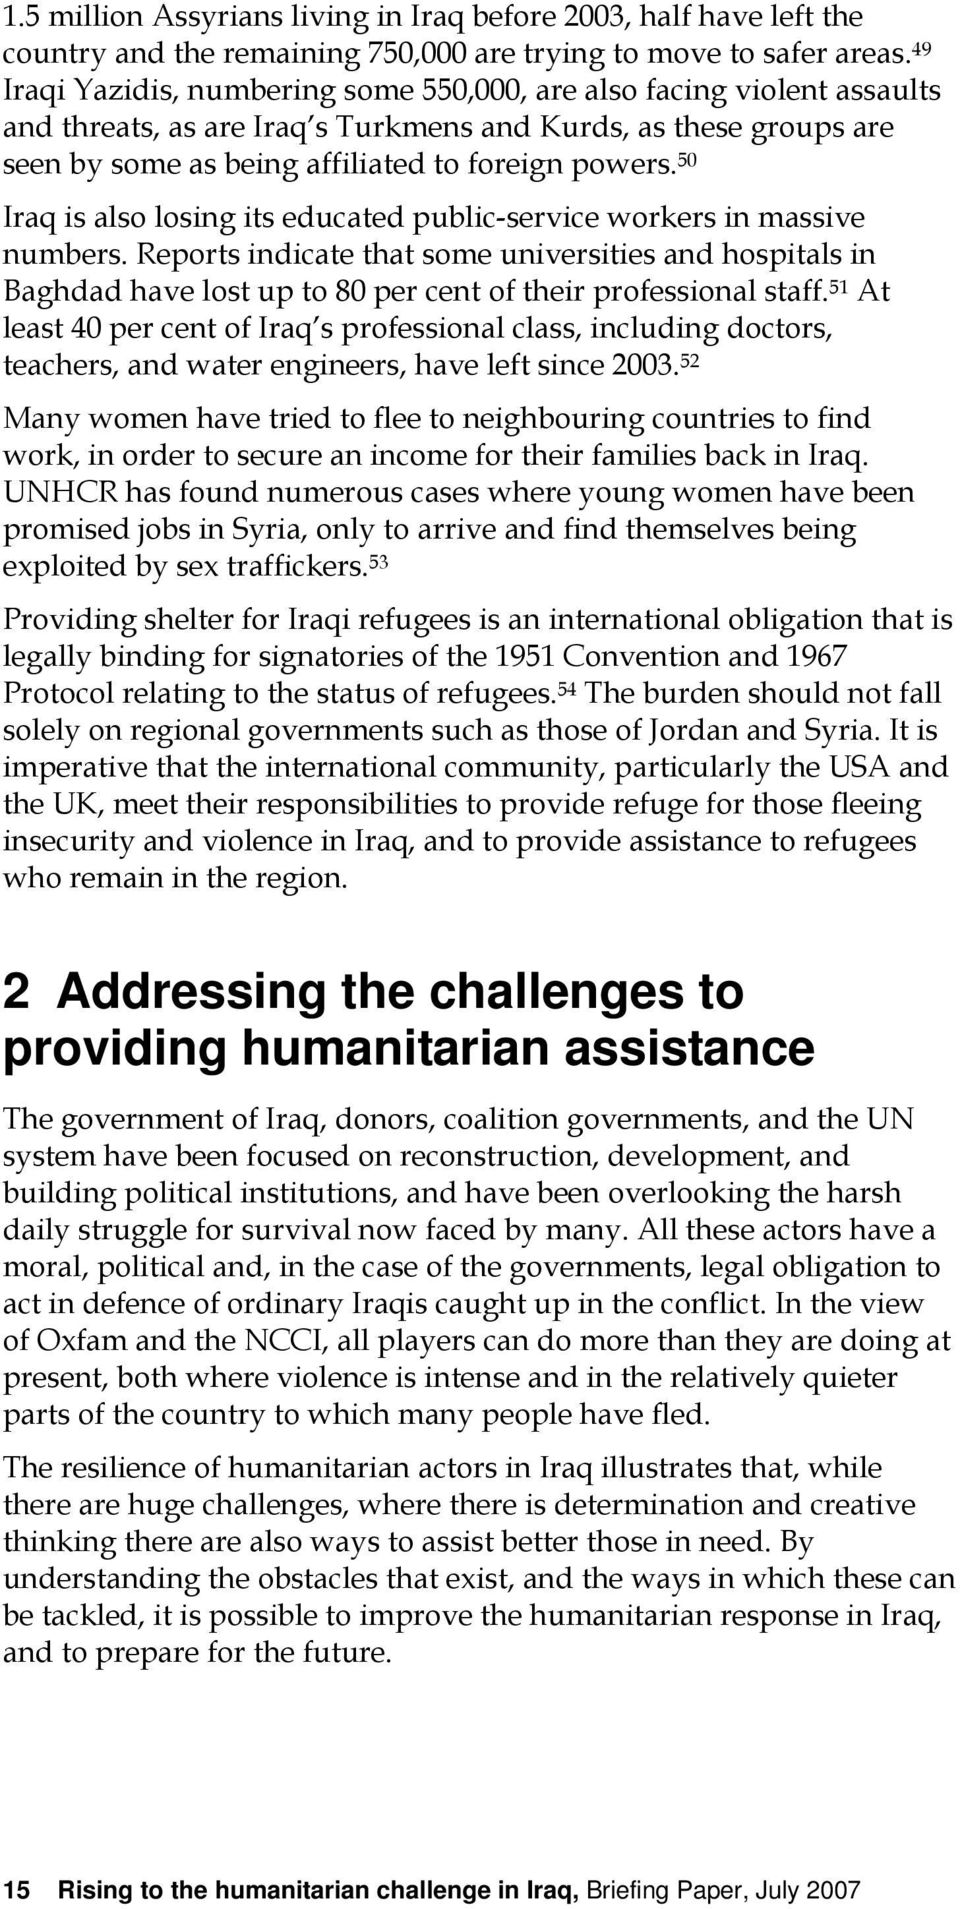 50 Iraq is also losing its educated public-service workers in massive numbers. Reports indicate that some universities and hospitals in Baghdad have lost up to 80 per cent of their professional staff.